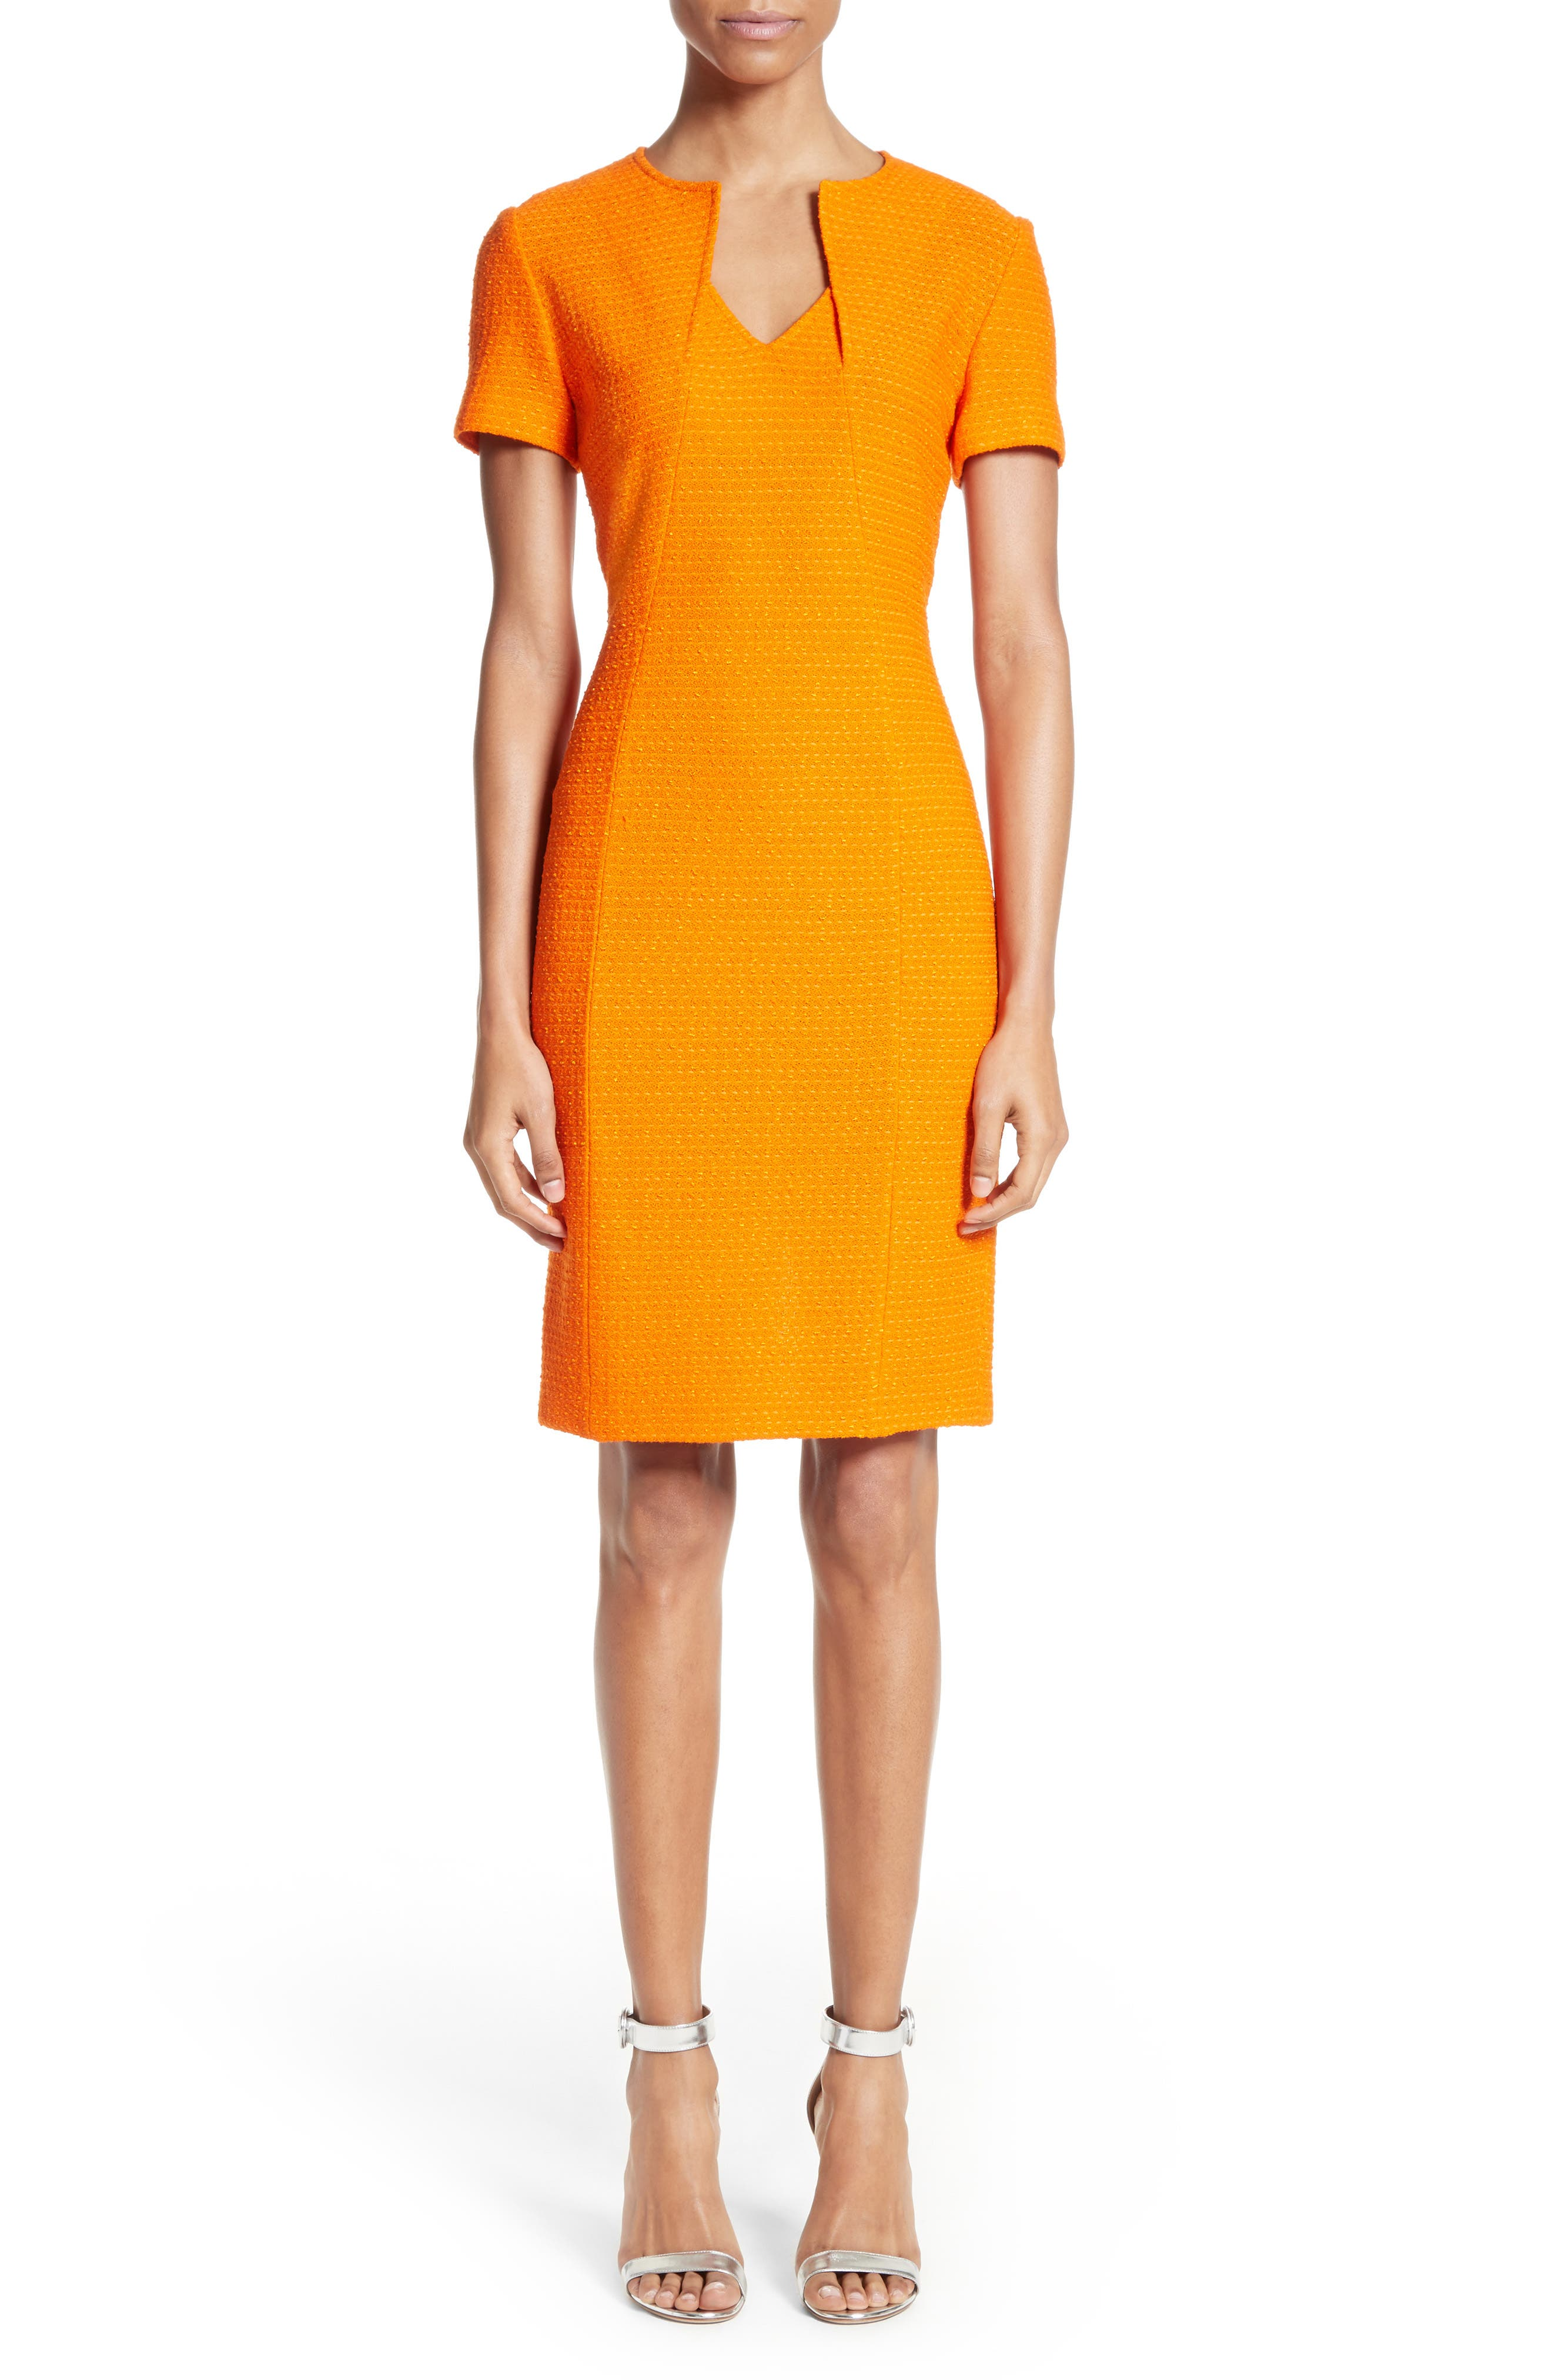 St. John Collection Ribbon Texture Knit Dress